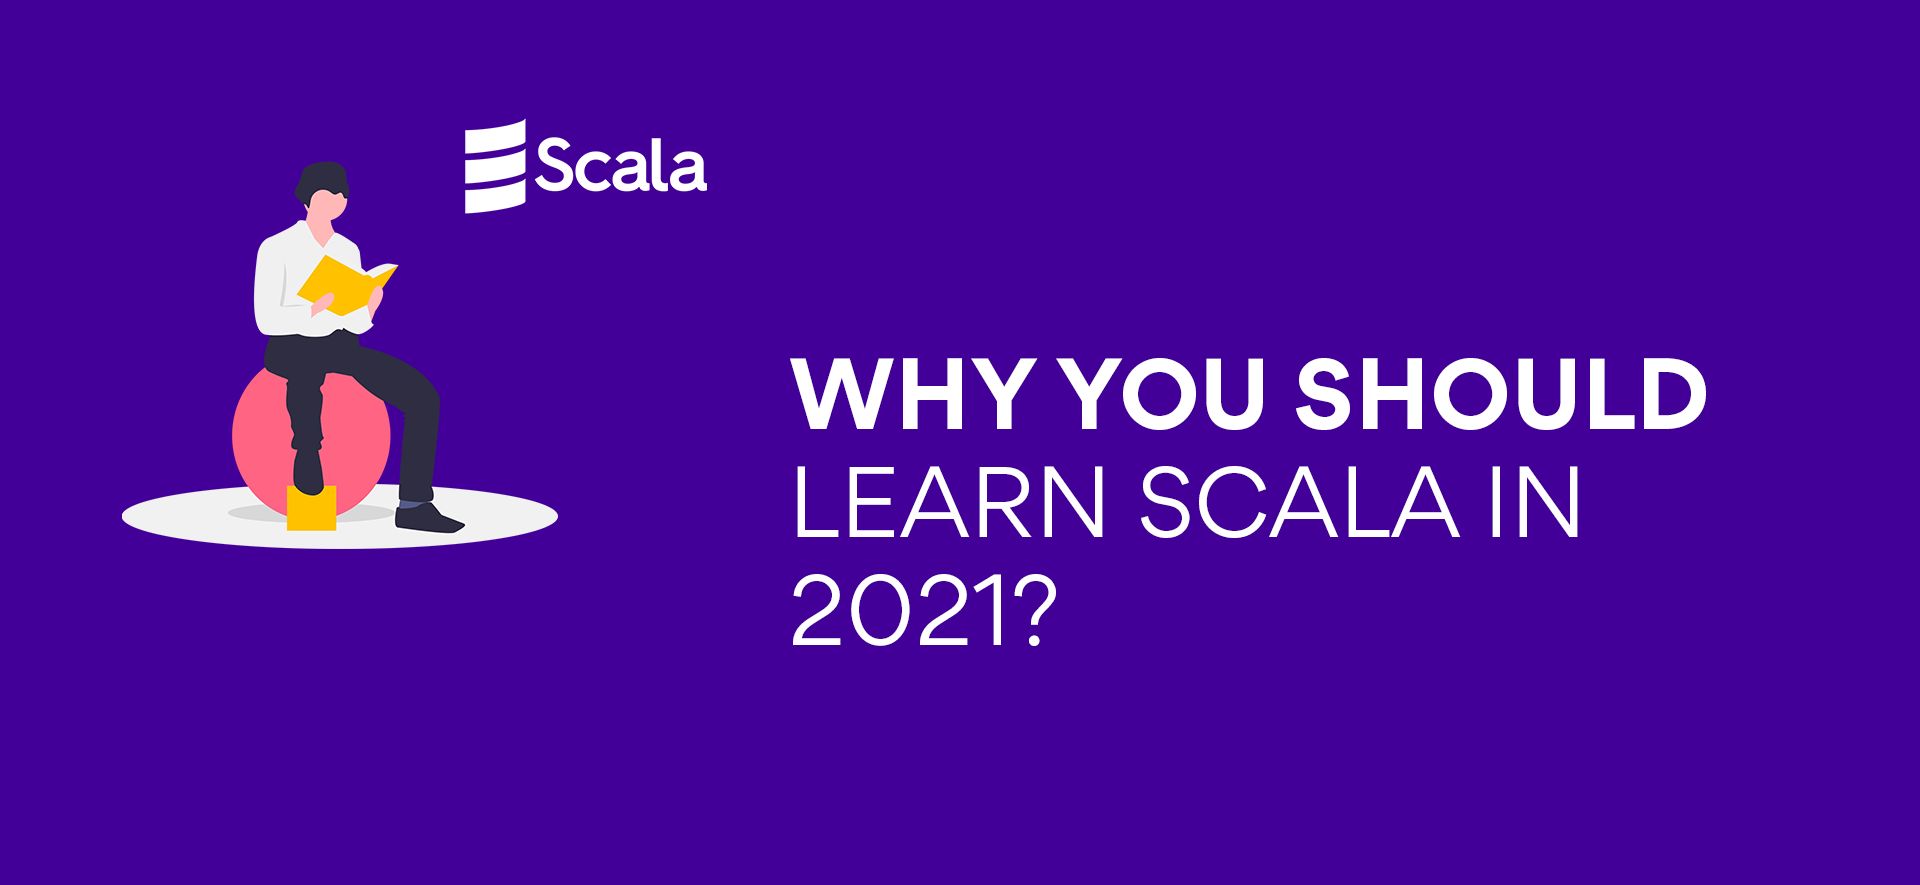 Why you should learn Scala in 2021?